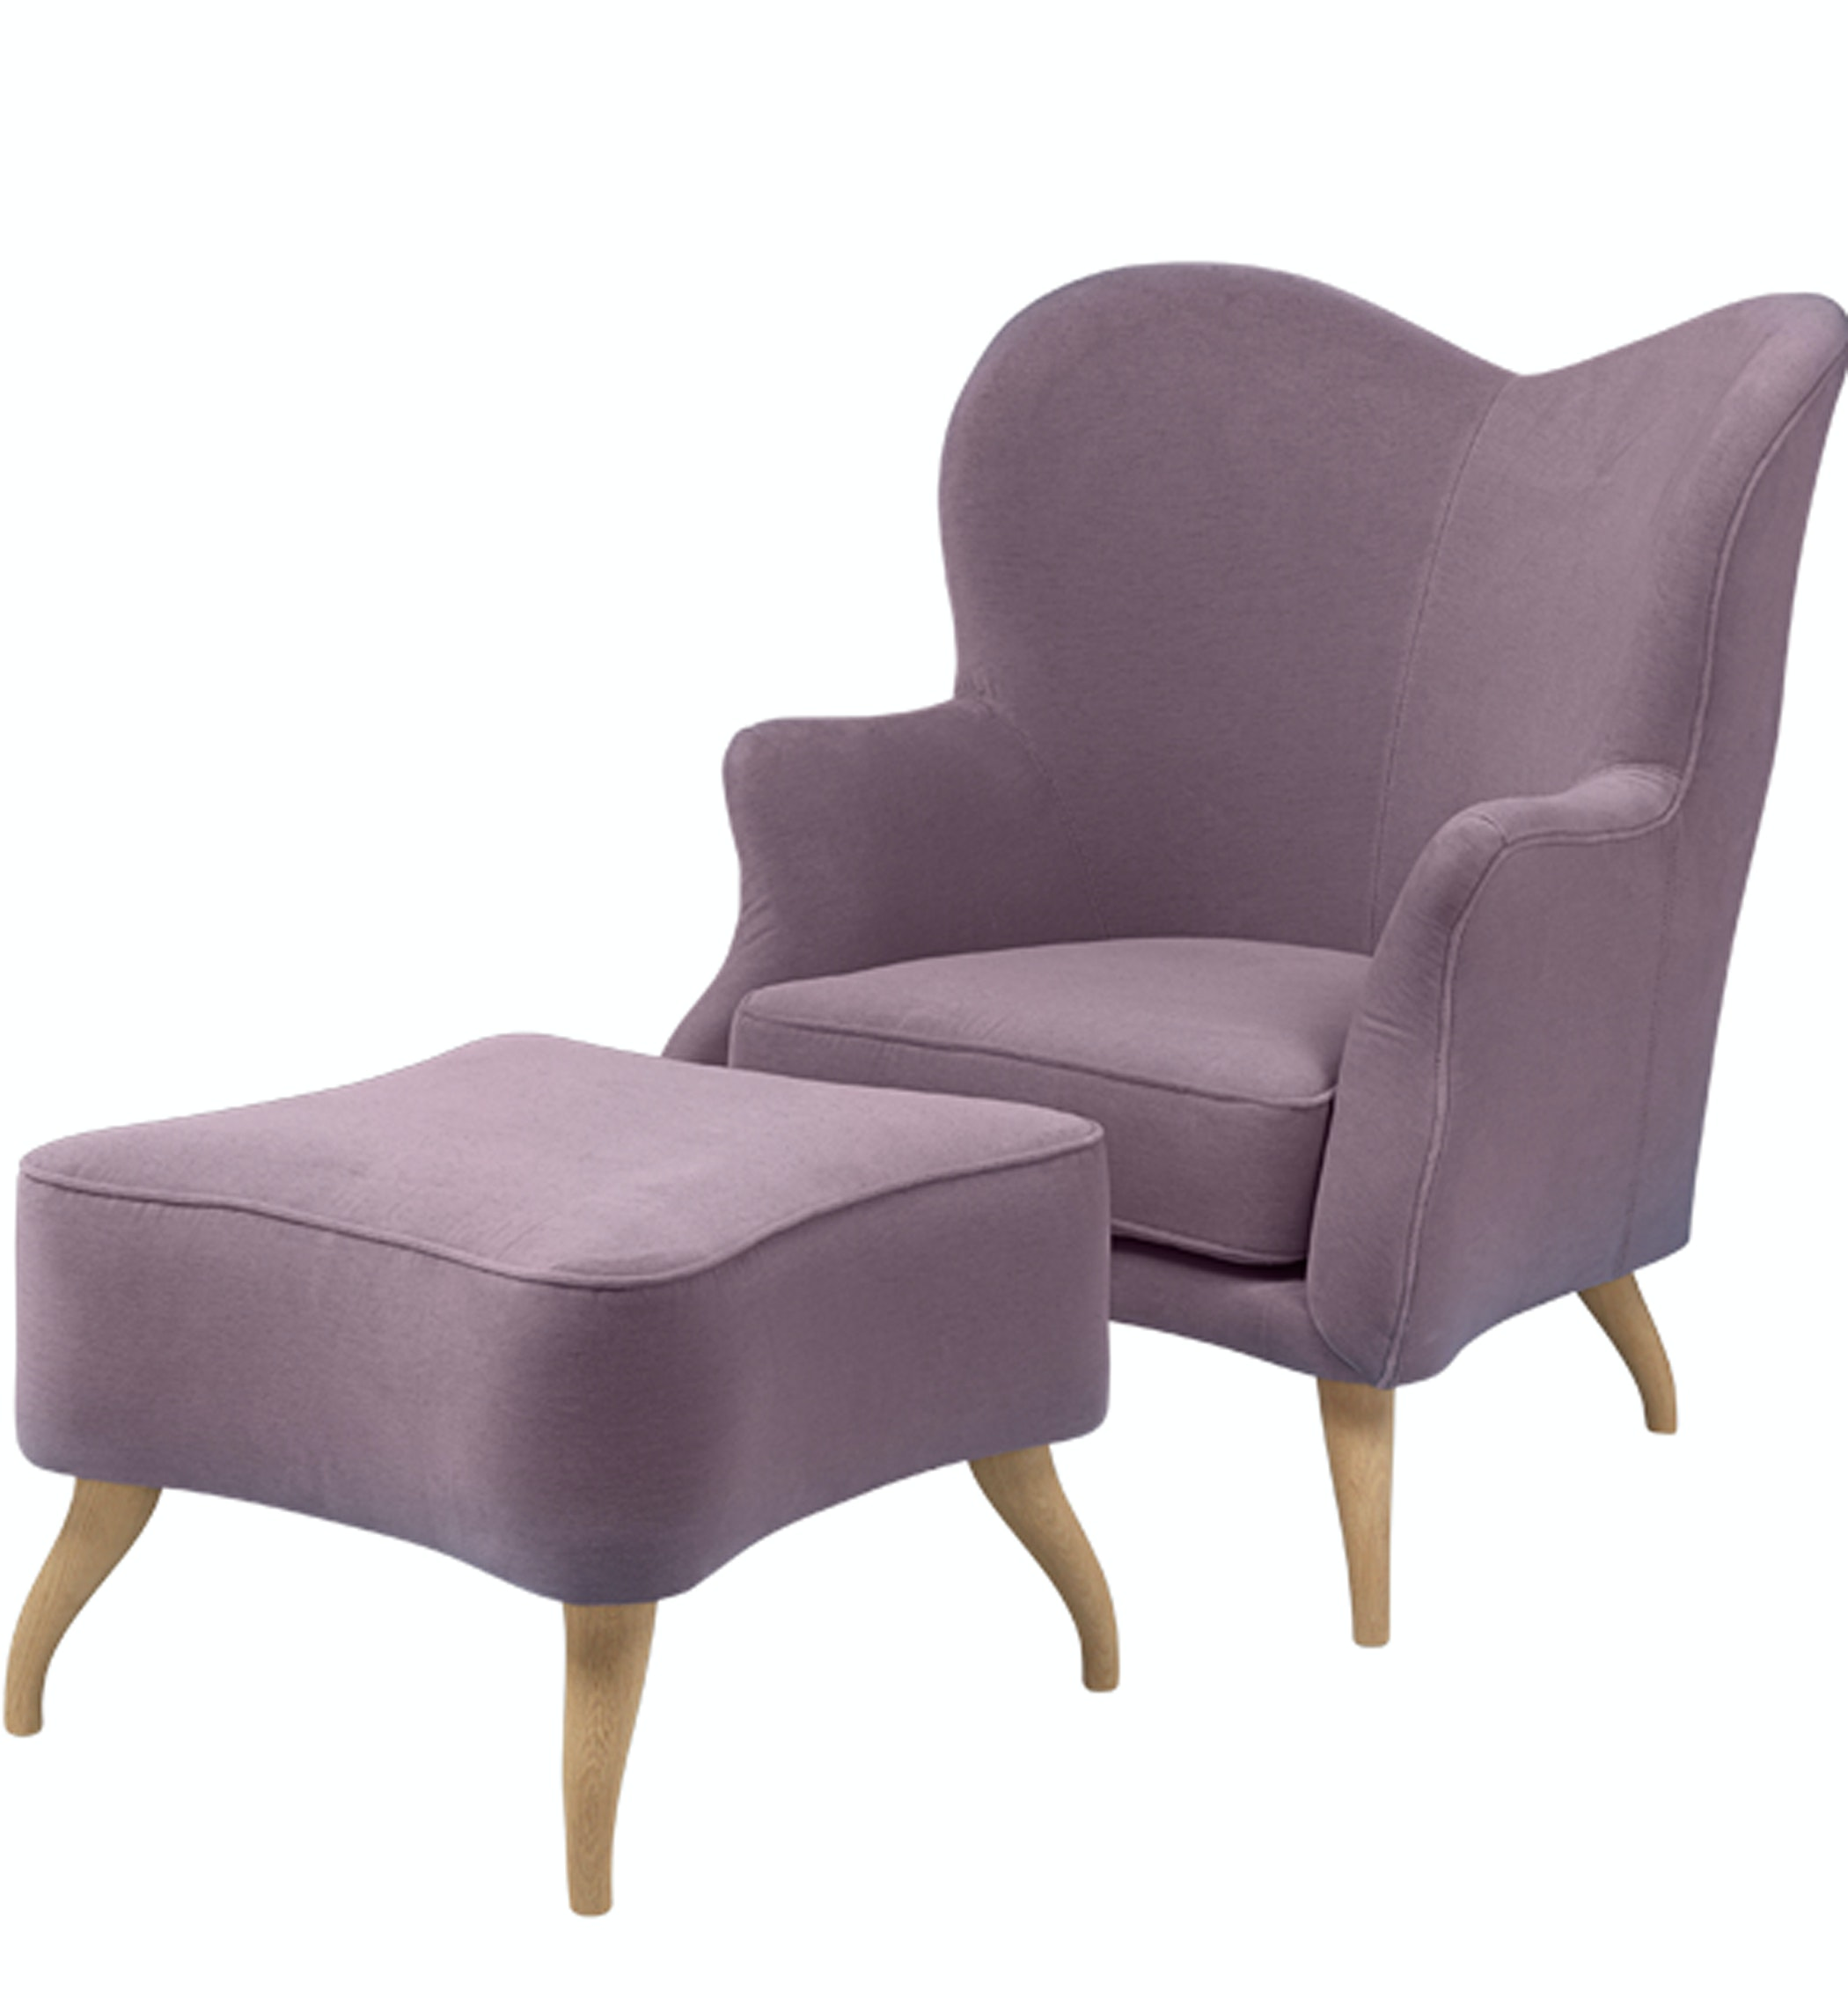 Bonaparte Chair Pink Product